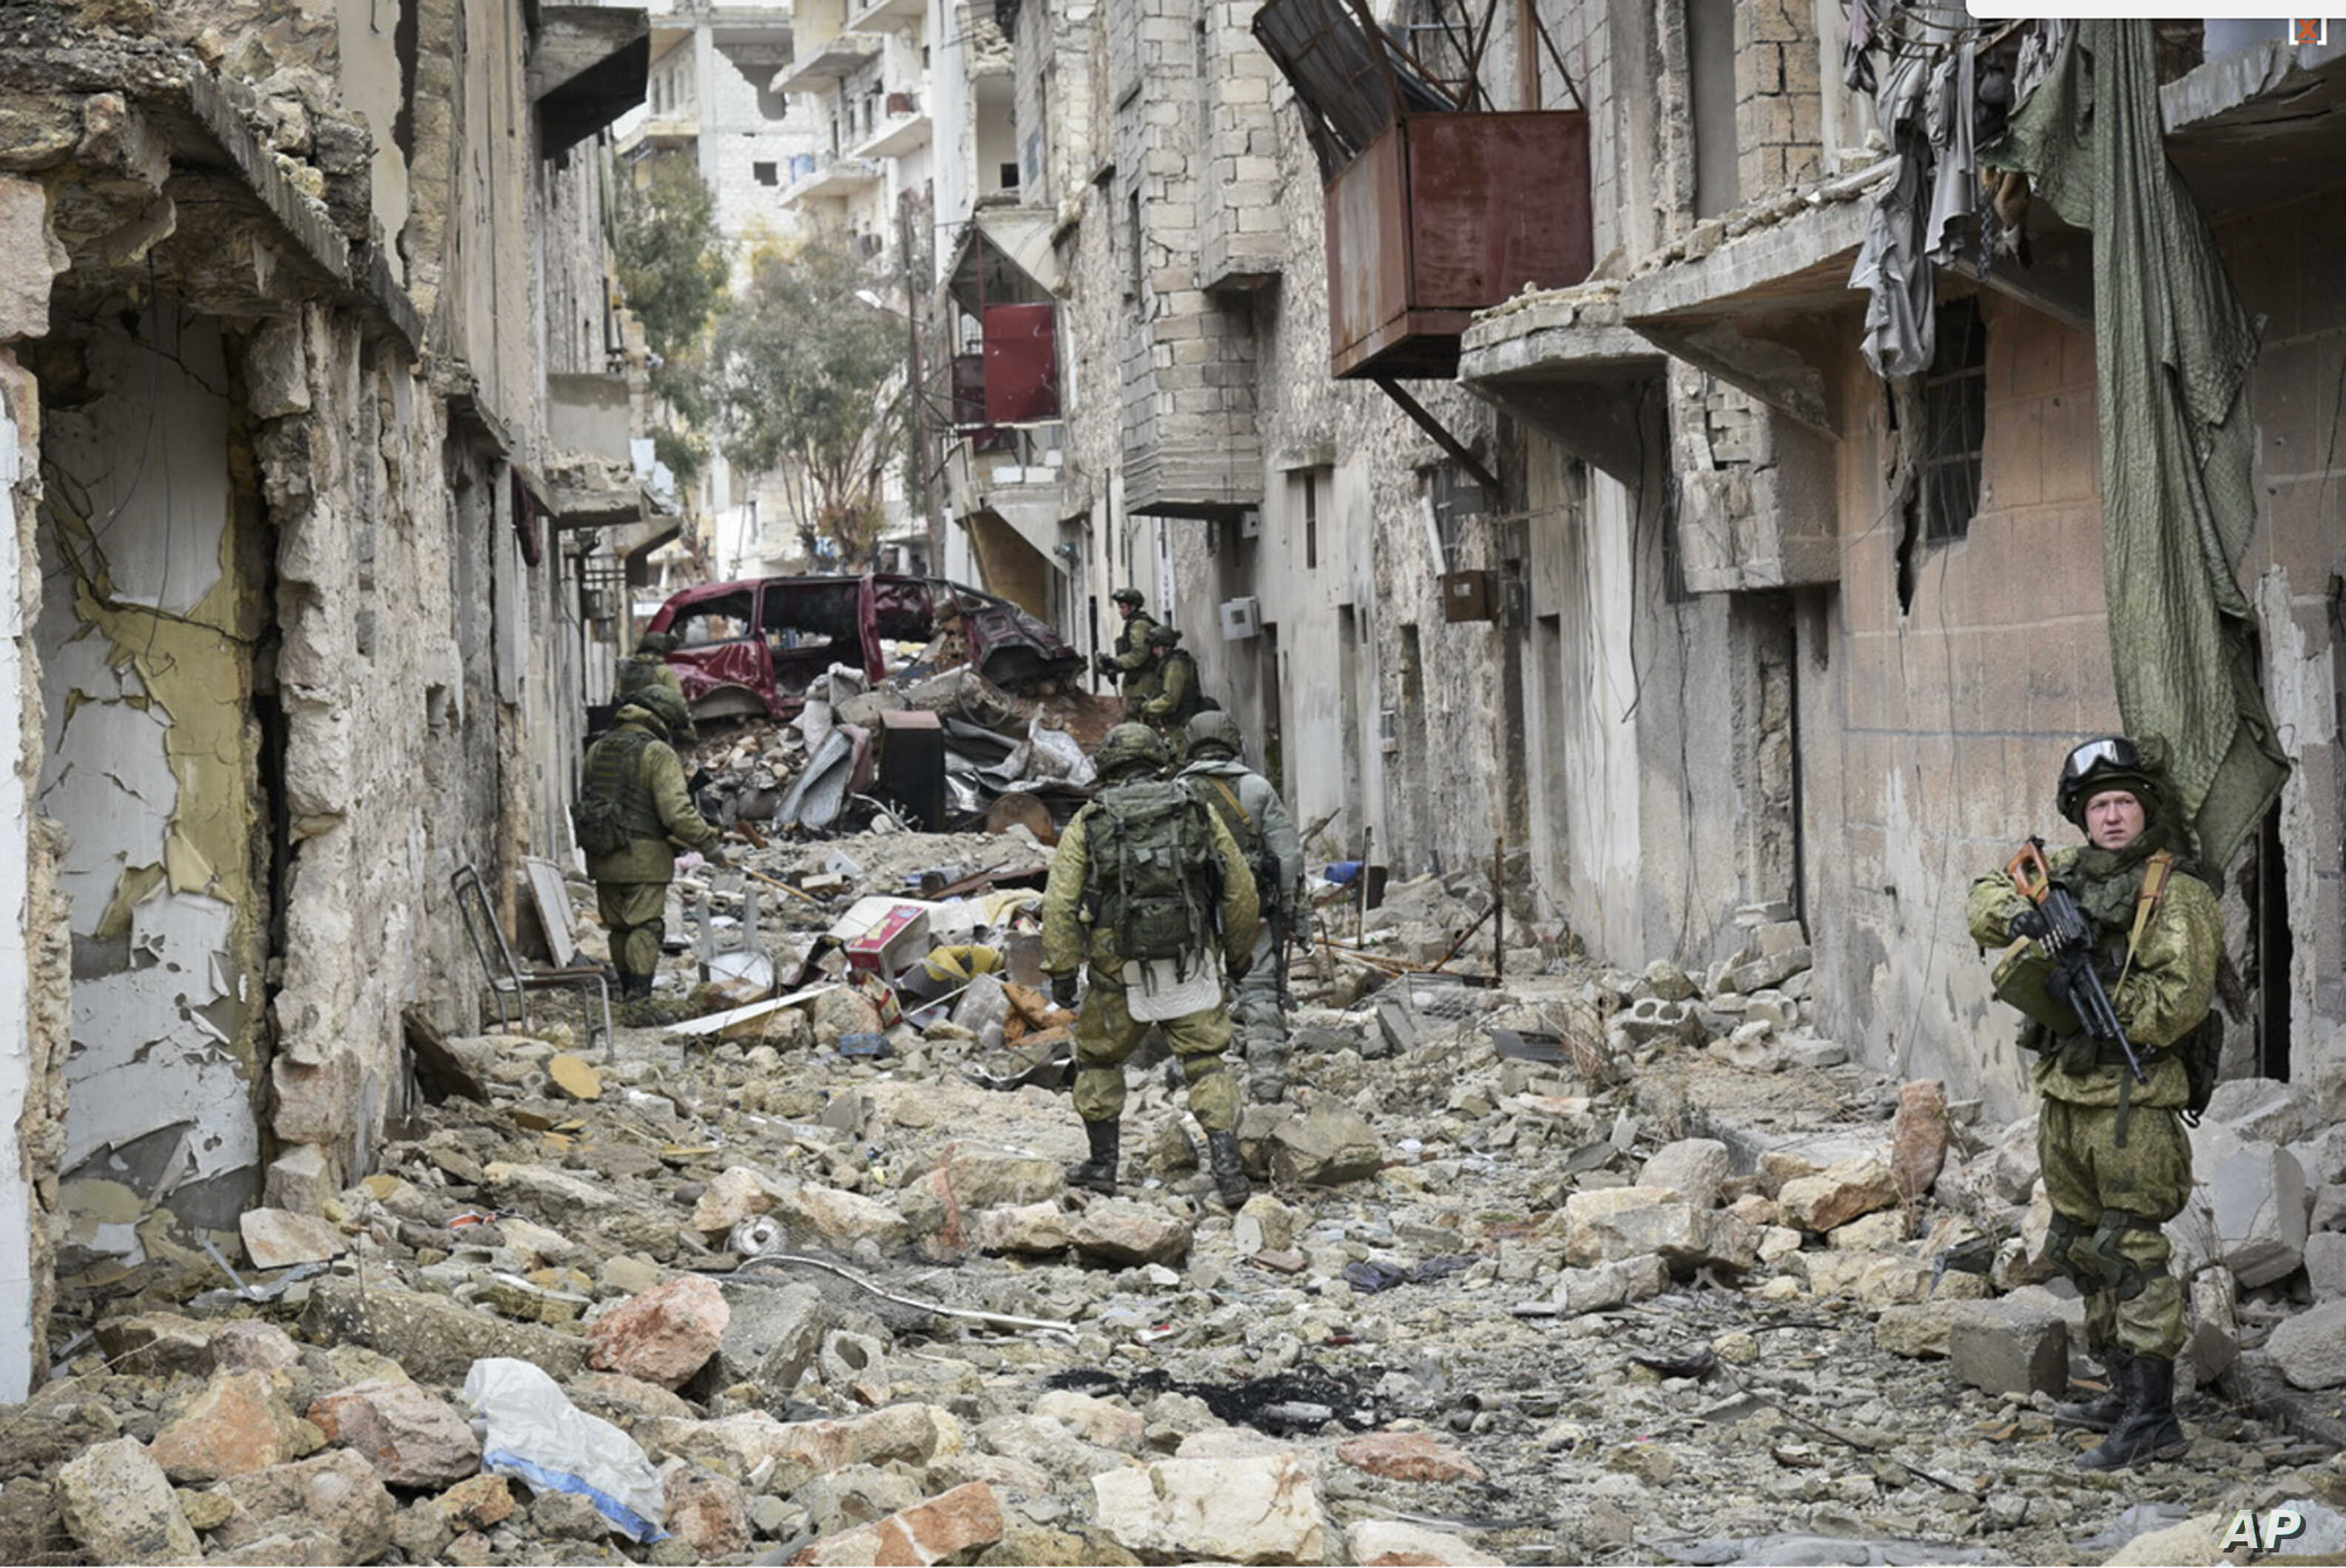 This undated handout photo released, Jan. 2, 2017, by the Russian Defense Ministry claims to show Russian Military engineers operating in Aleppo, Syria.